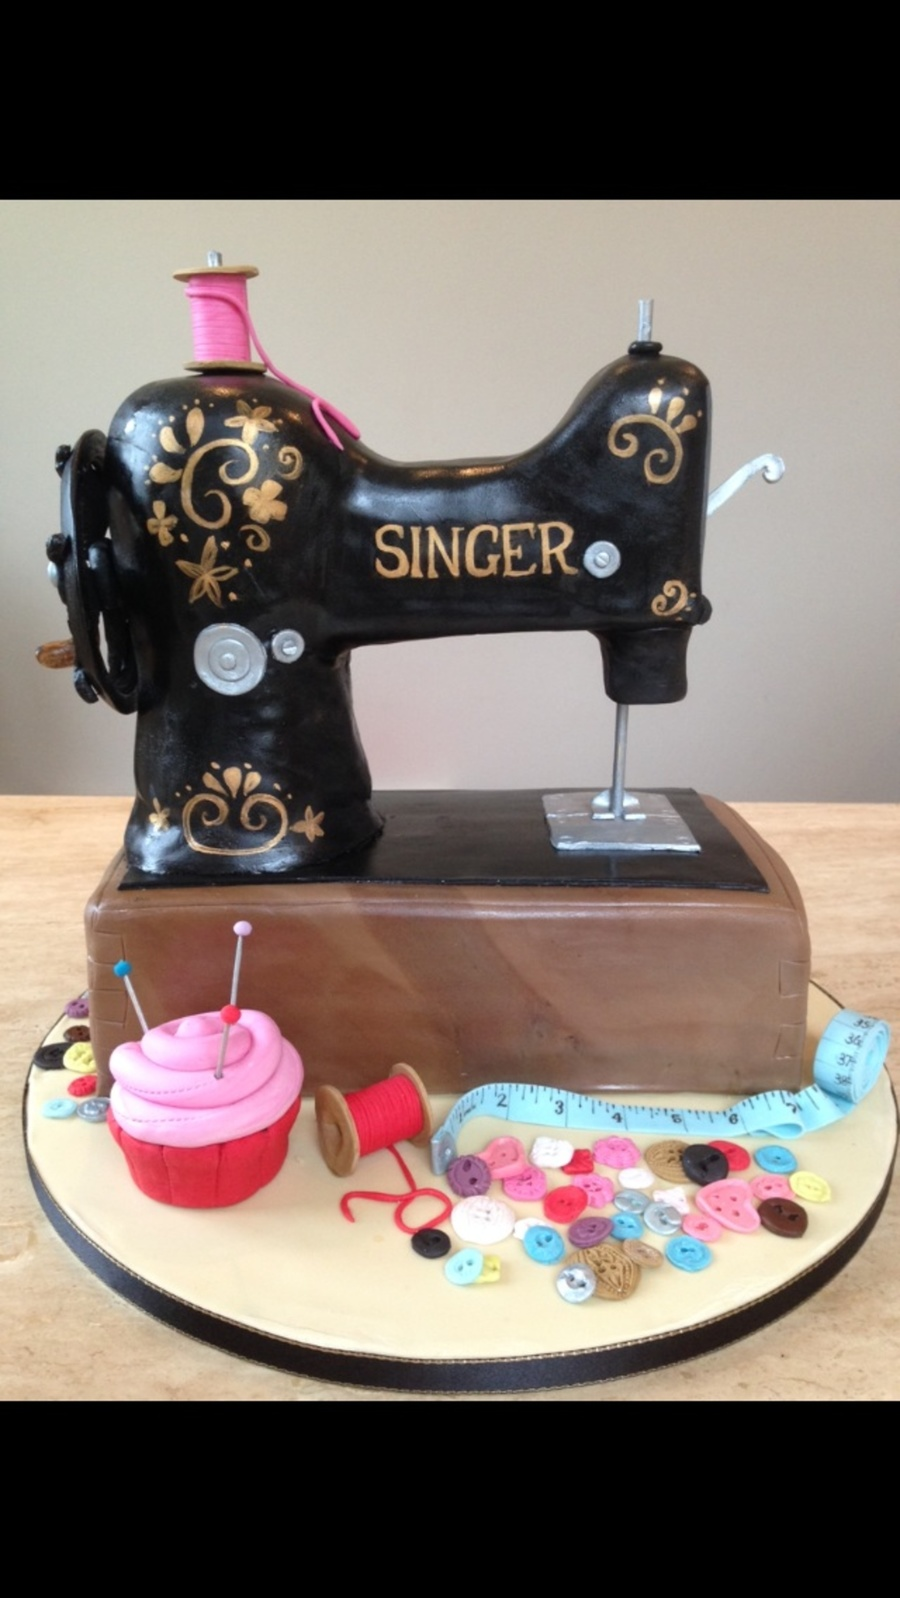 Singer Sewing Machine Birthday Cake Cakecentral Com